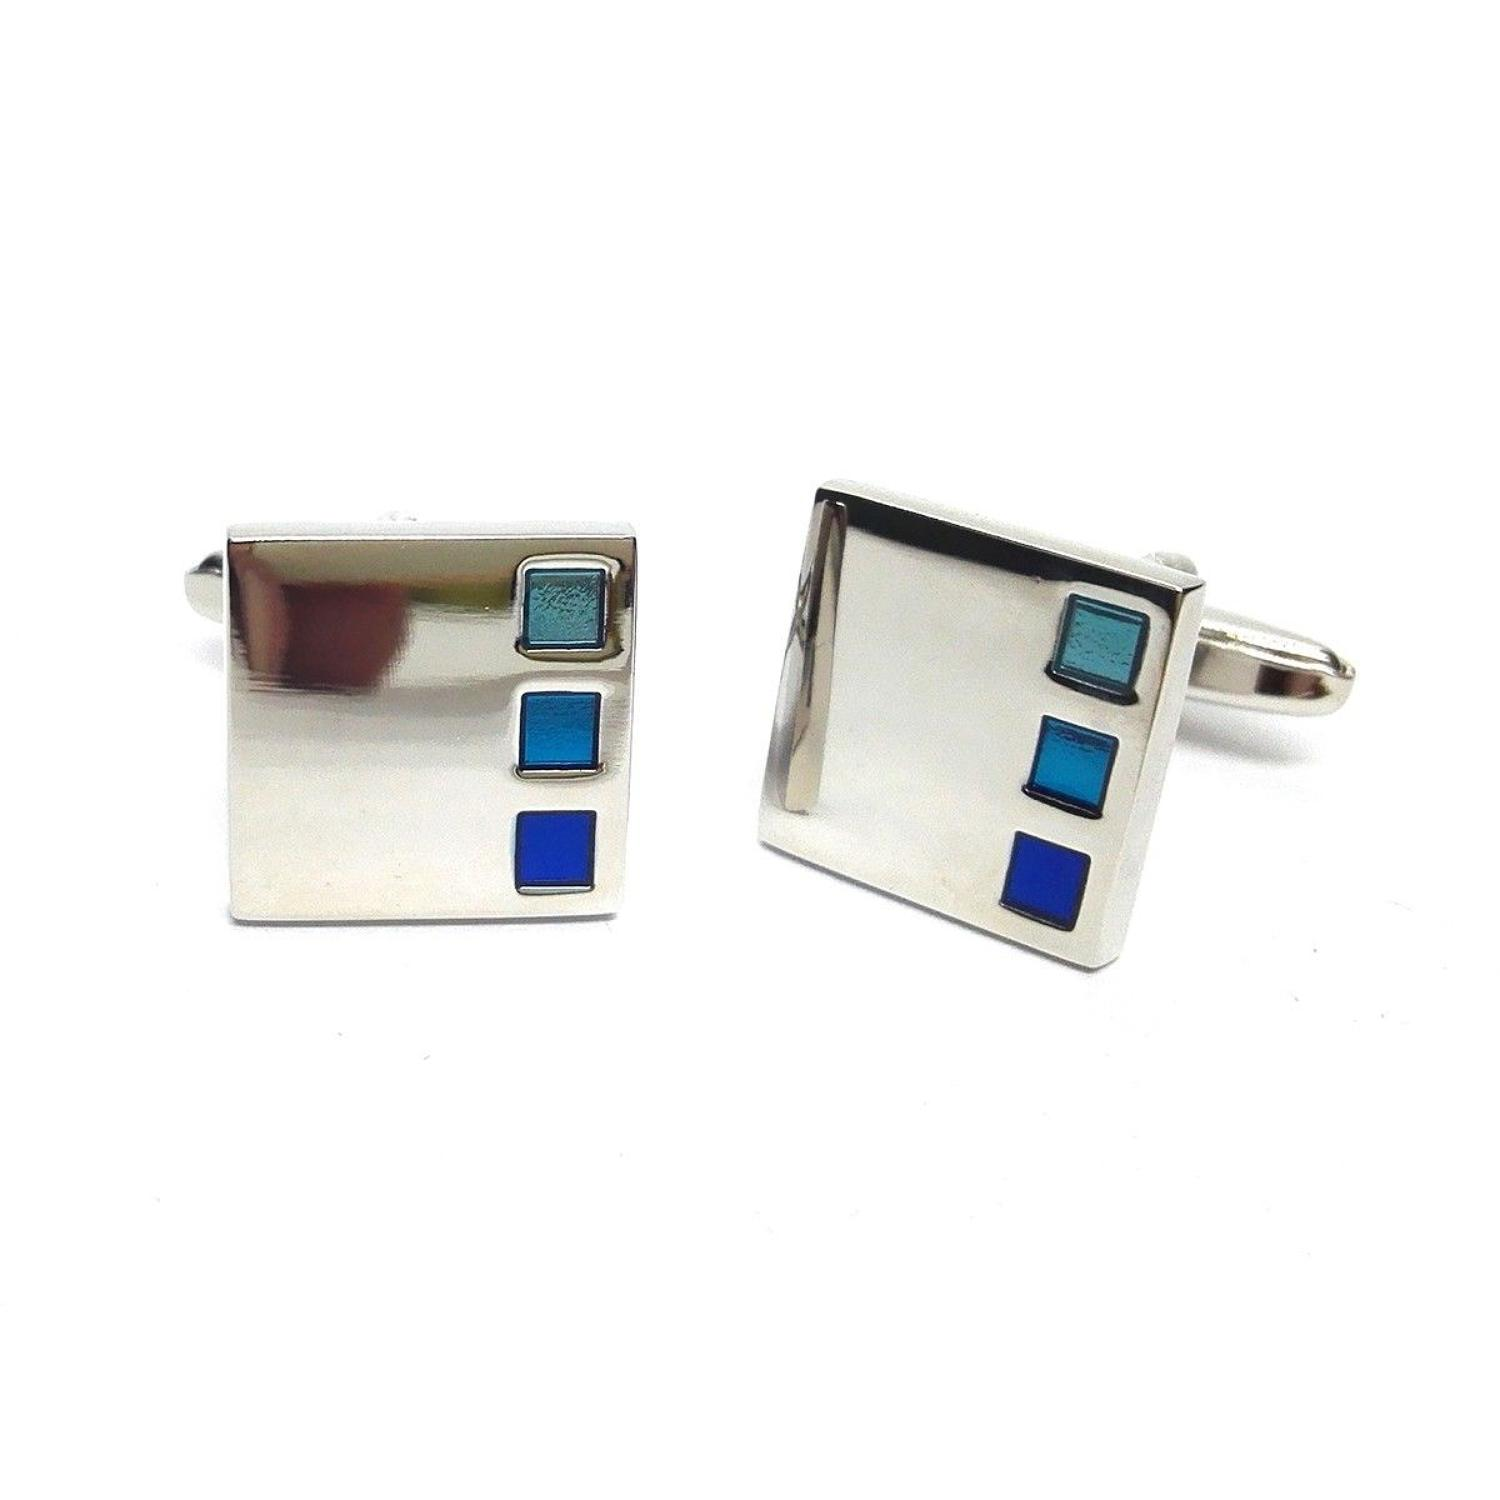 3 Blue Square Detail Cufflinks